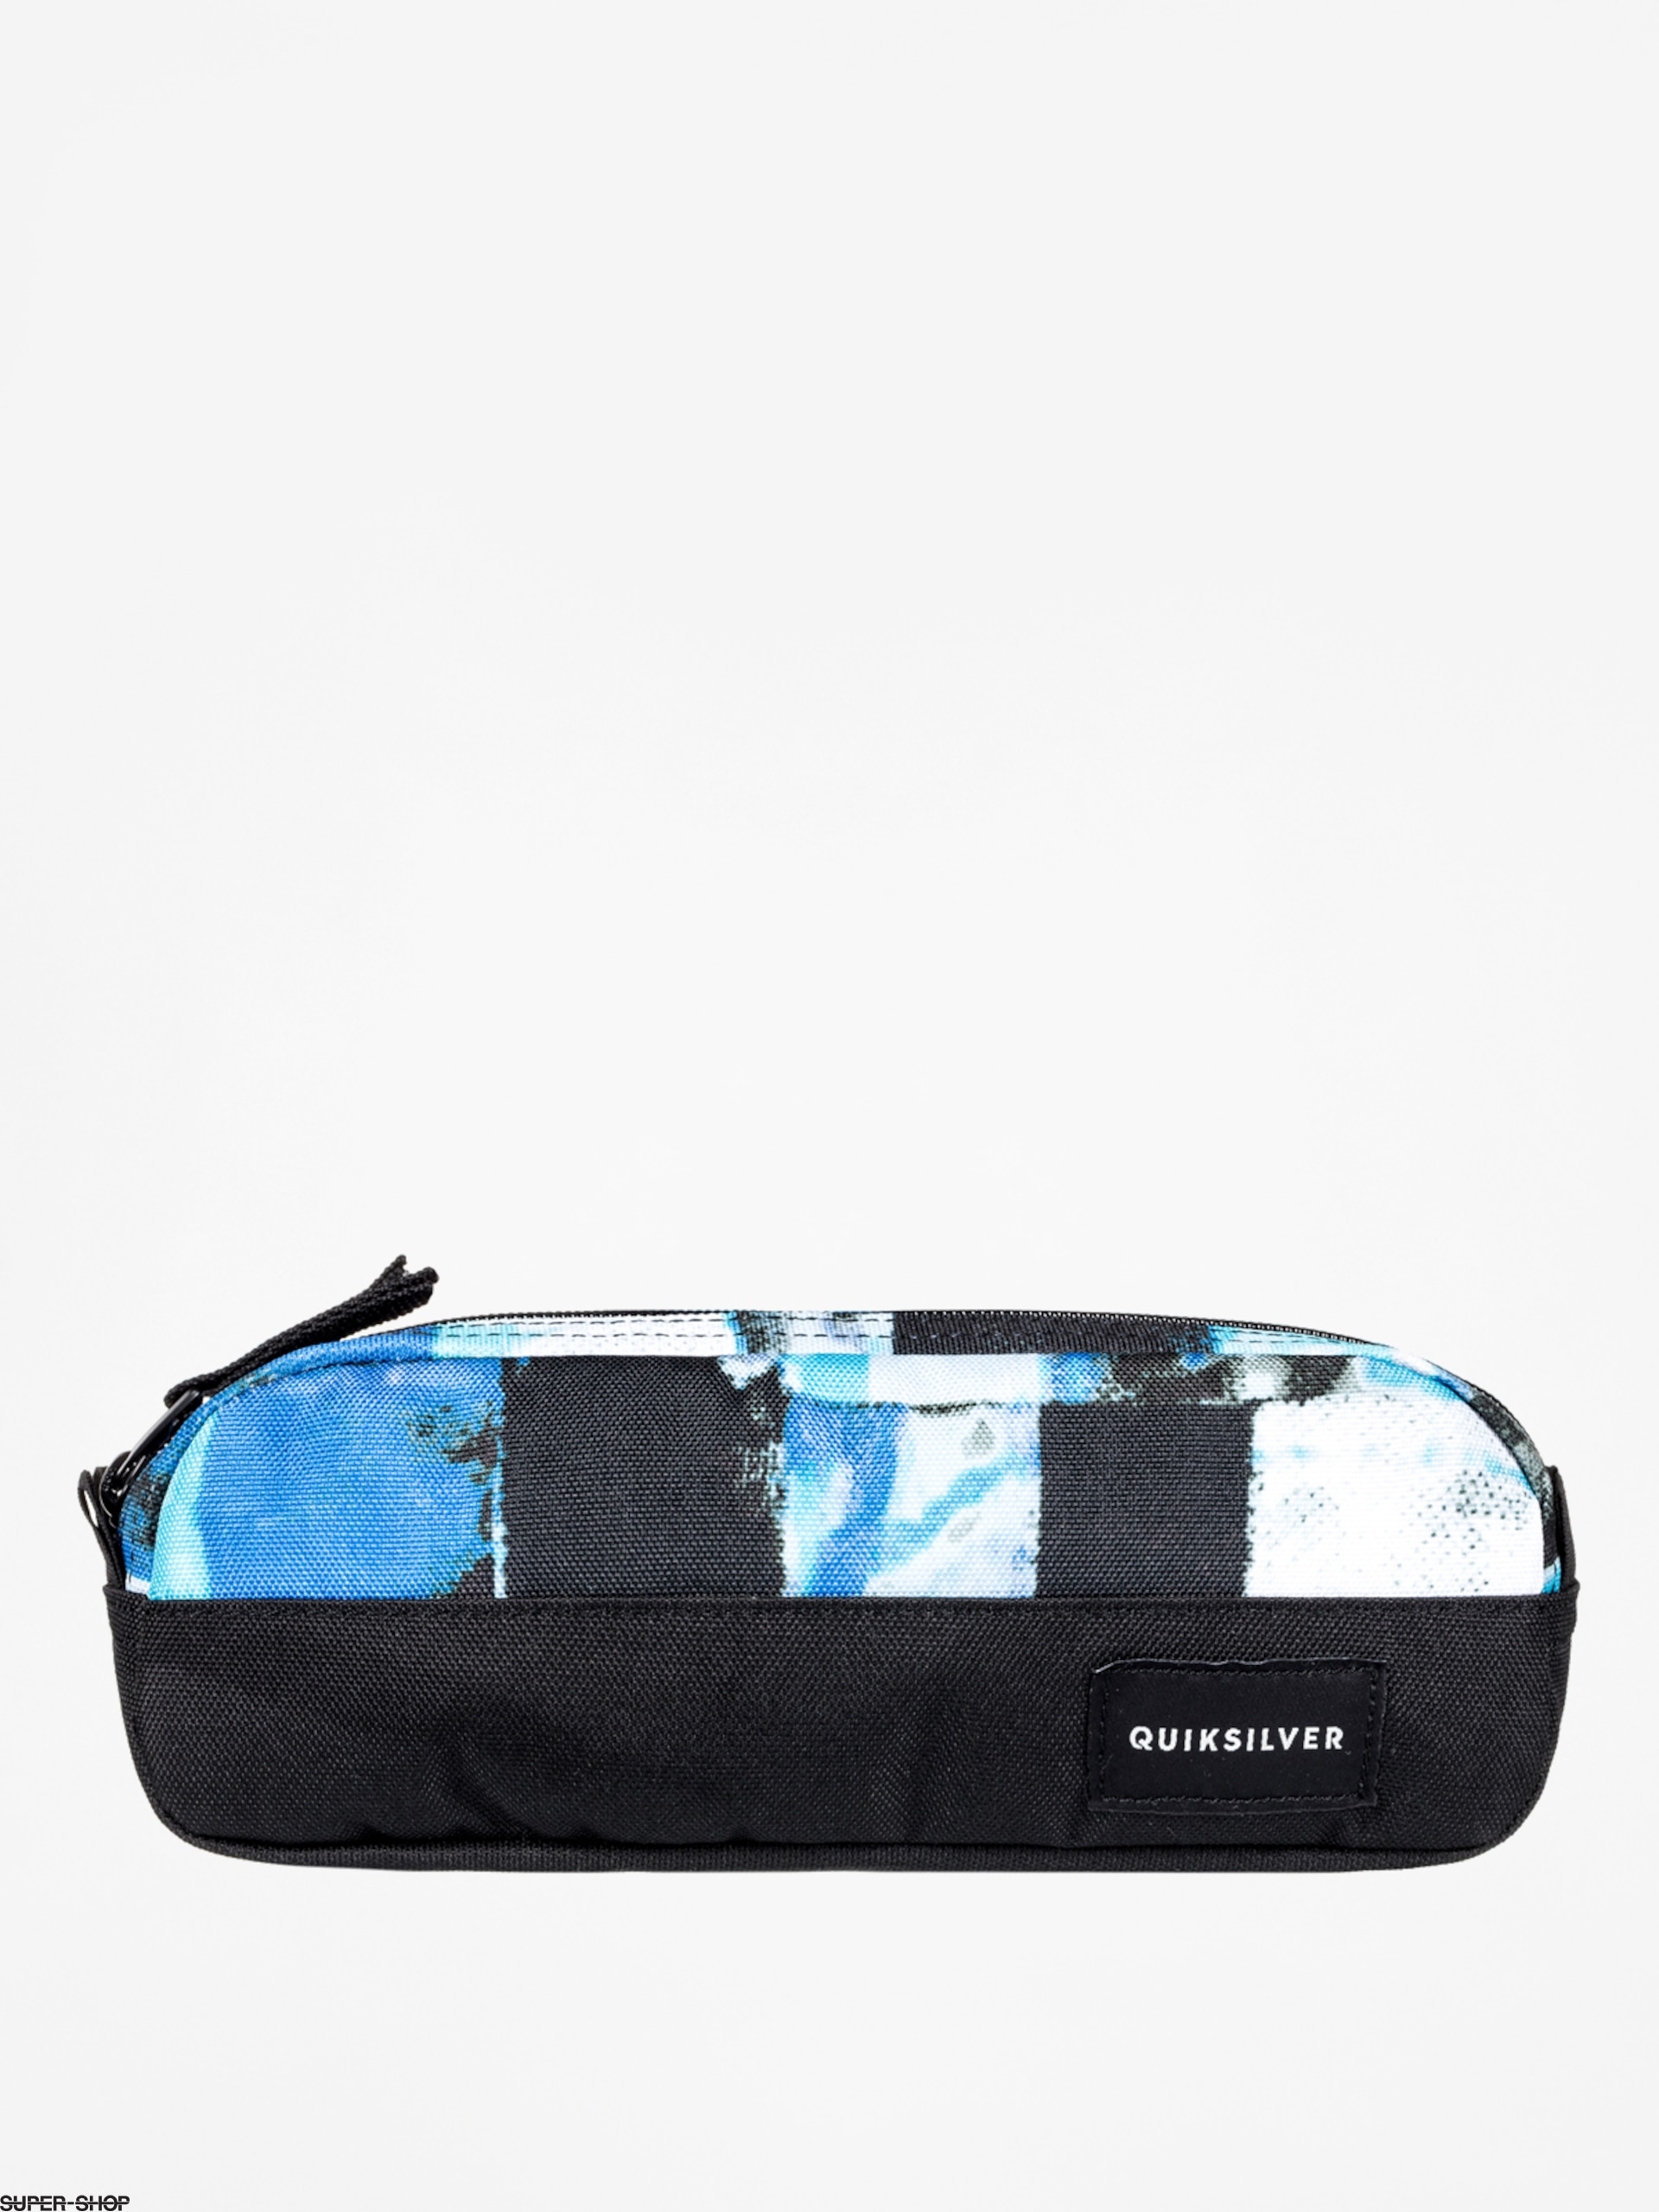 Quiksilver Federtasche Tasmen (turkish sea resin check)